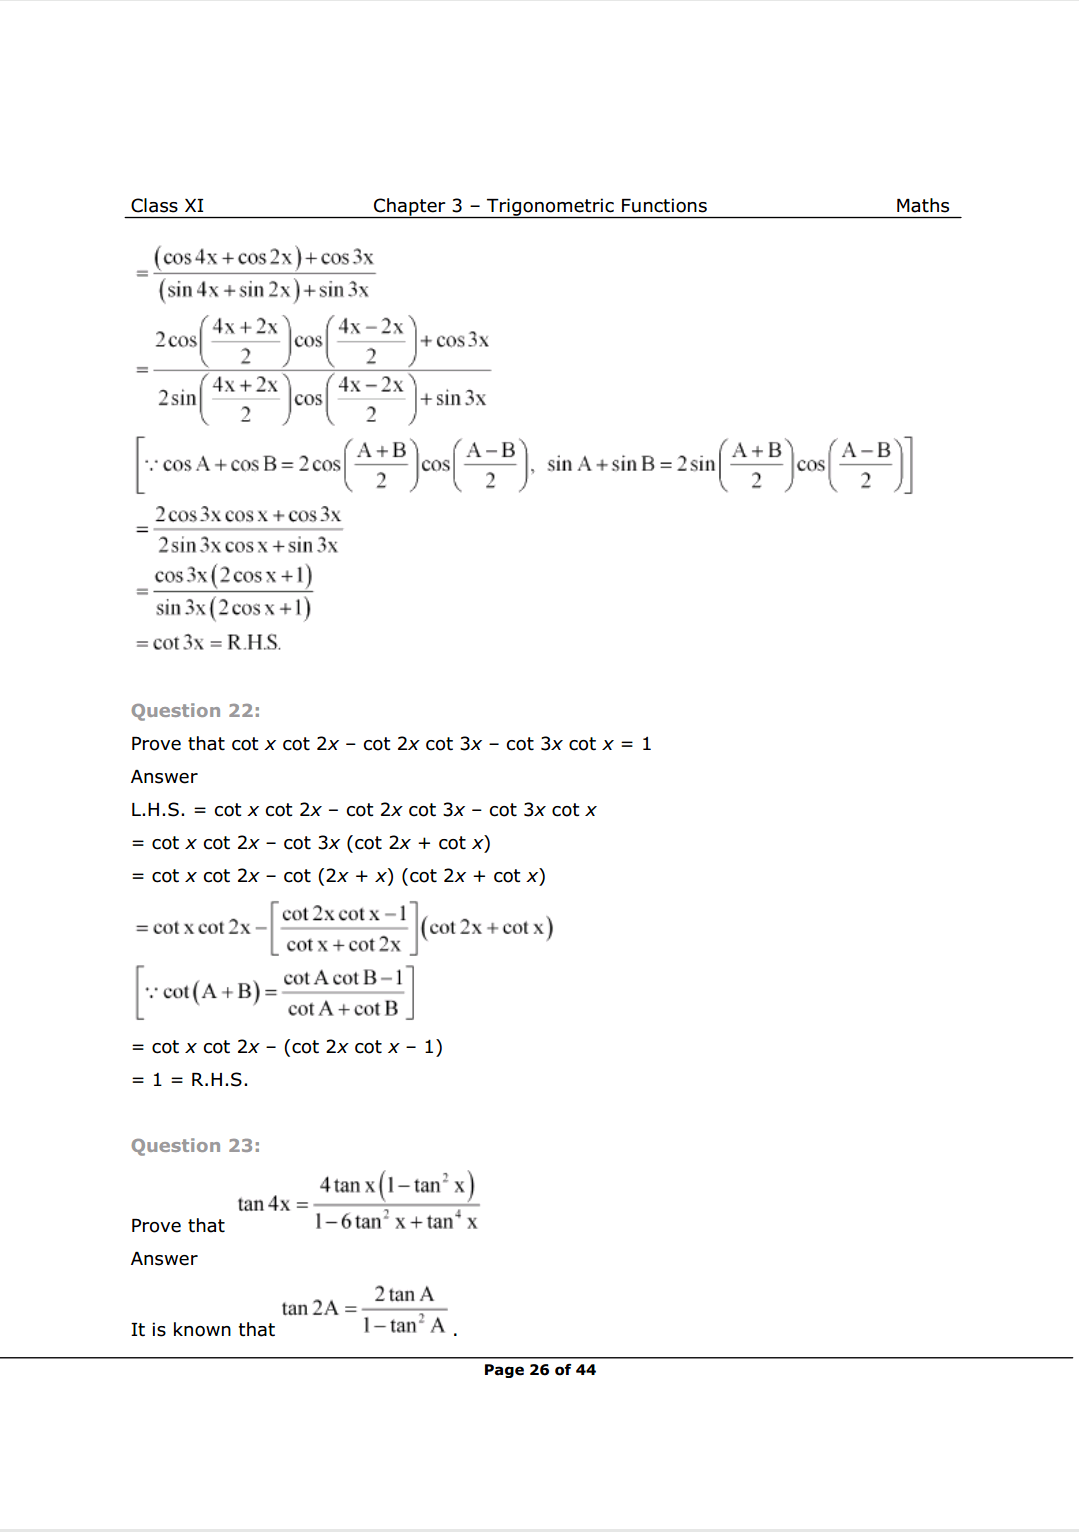 Class 11 Maths Chapter 3 Exercise 3.3 Solutions Image 13